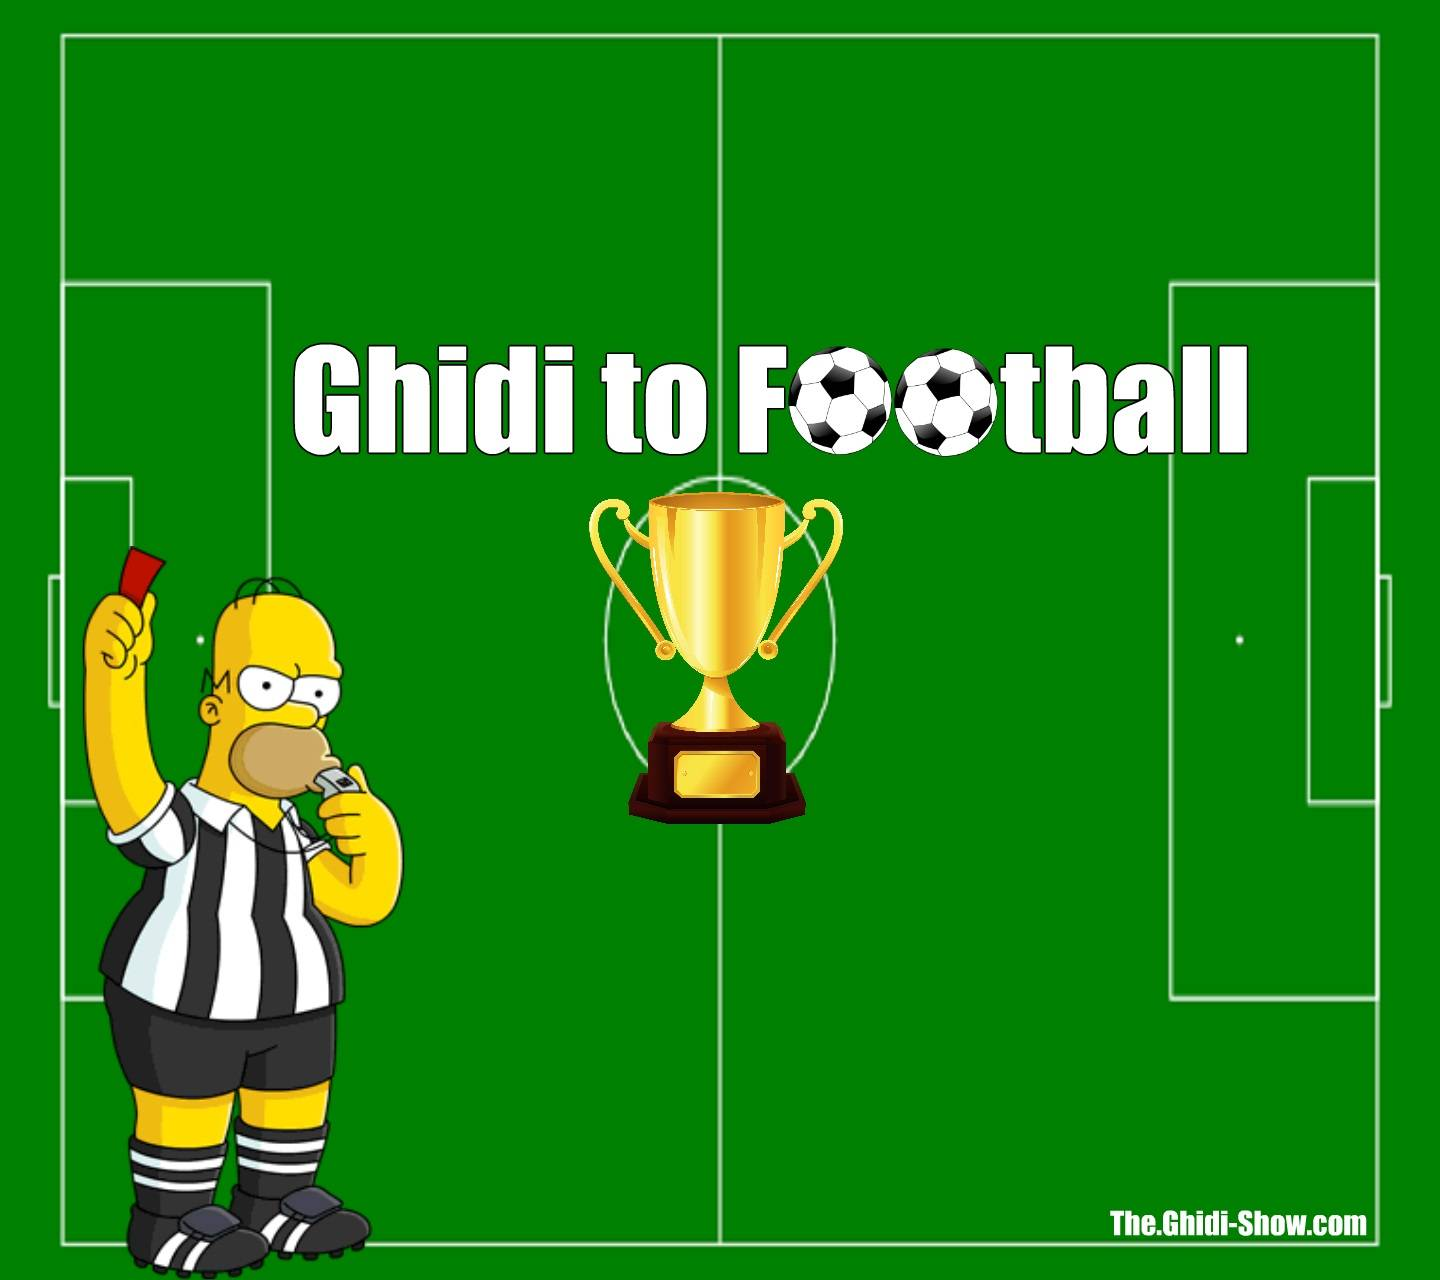 Ghidi To Football